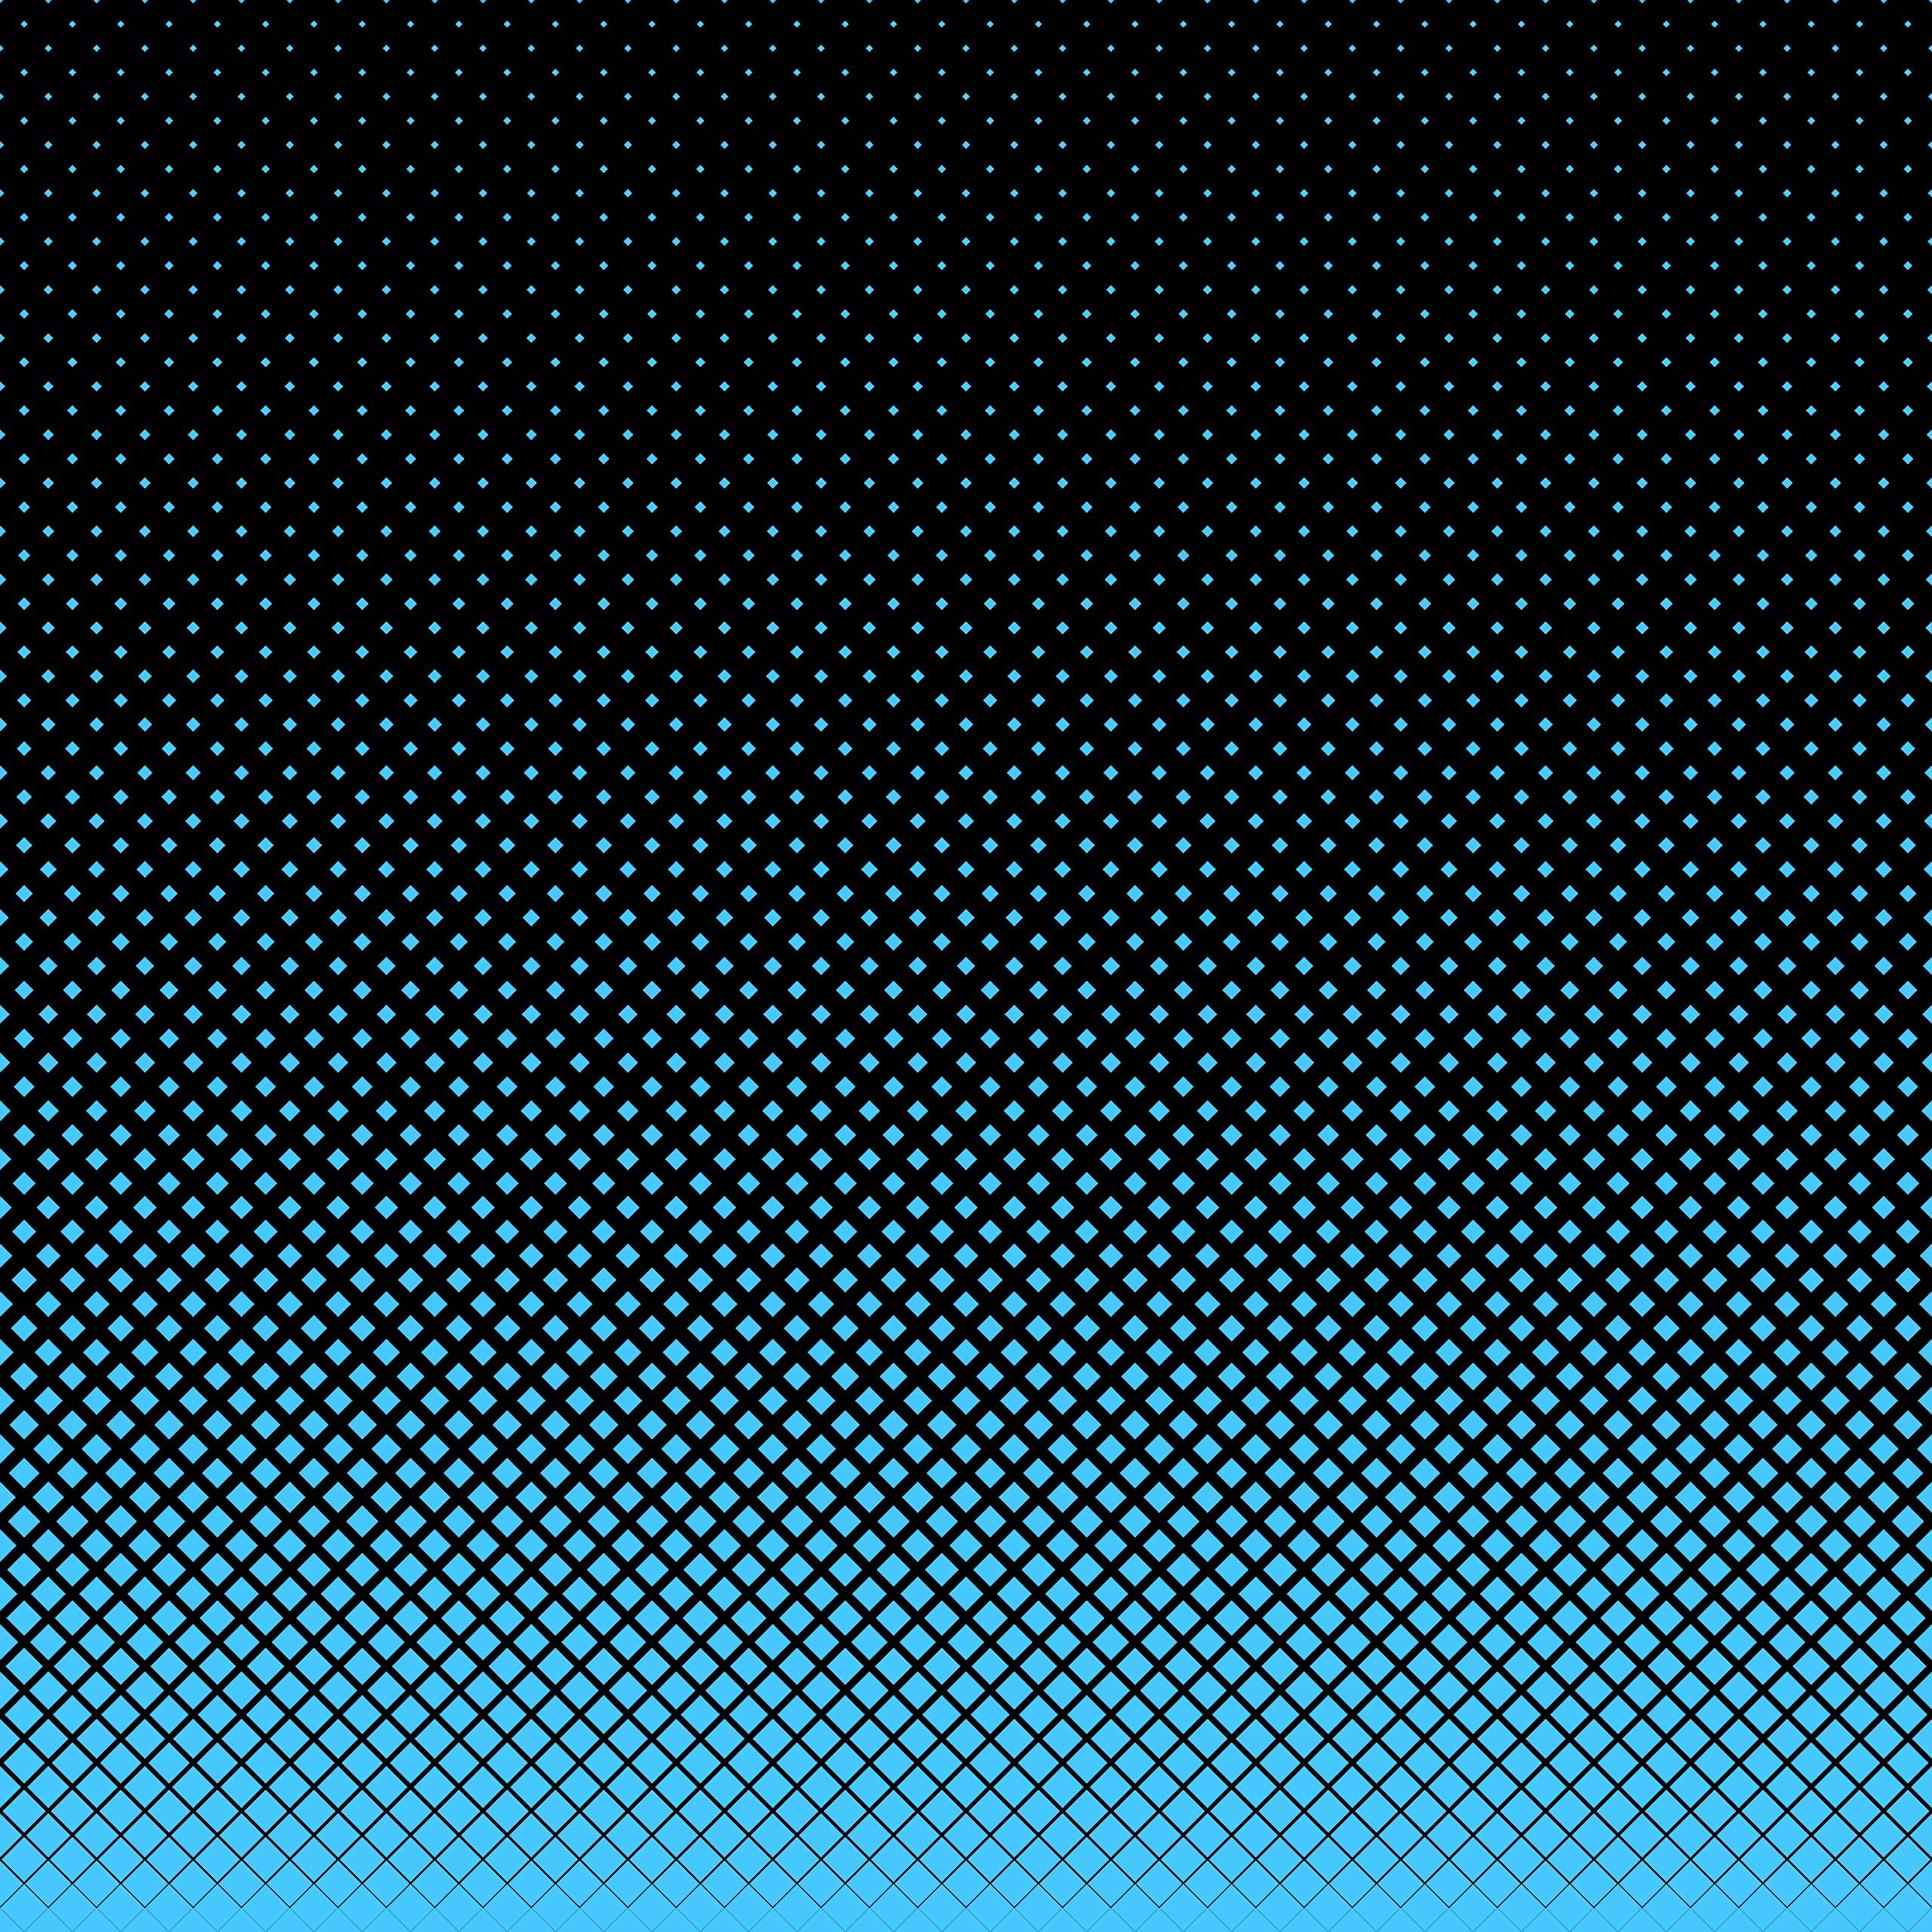 Best Texture wallpapers for phone screen